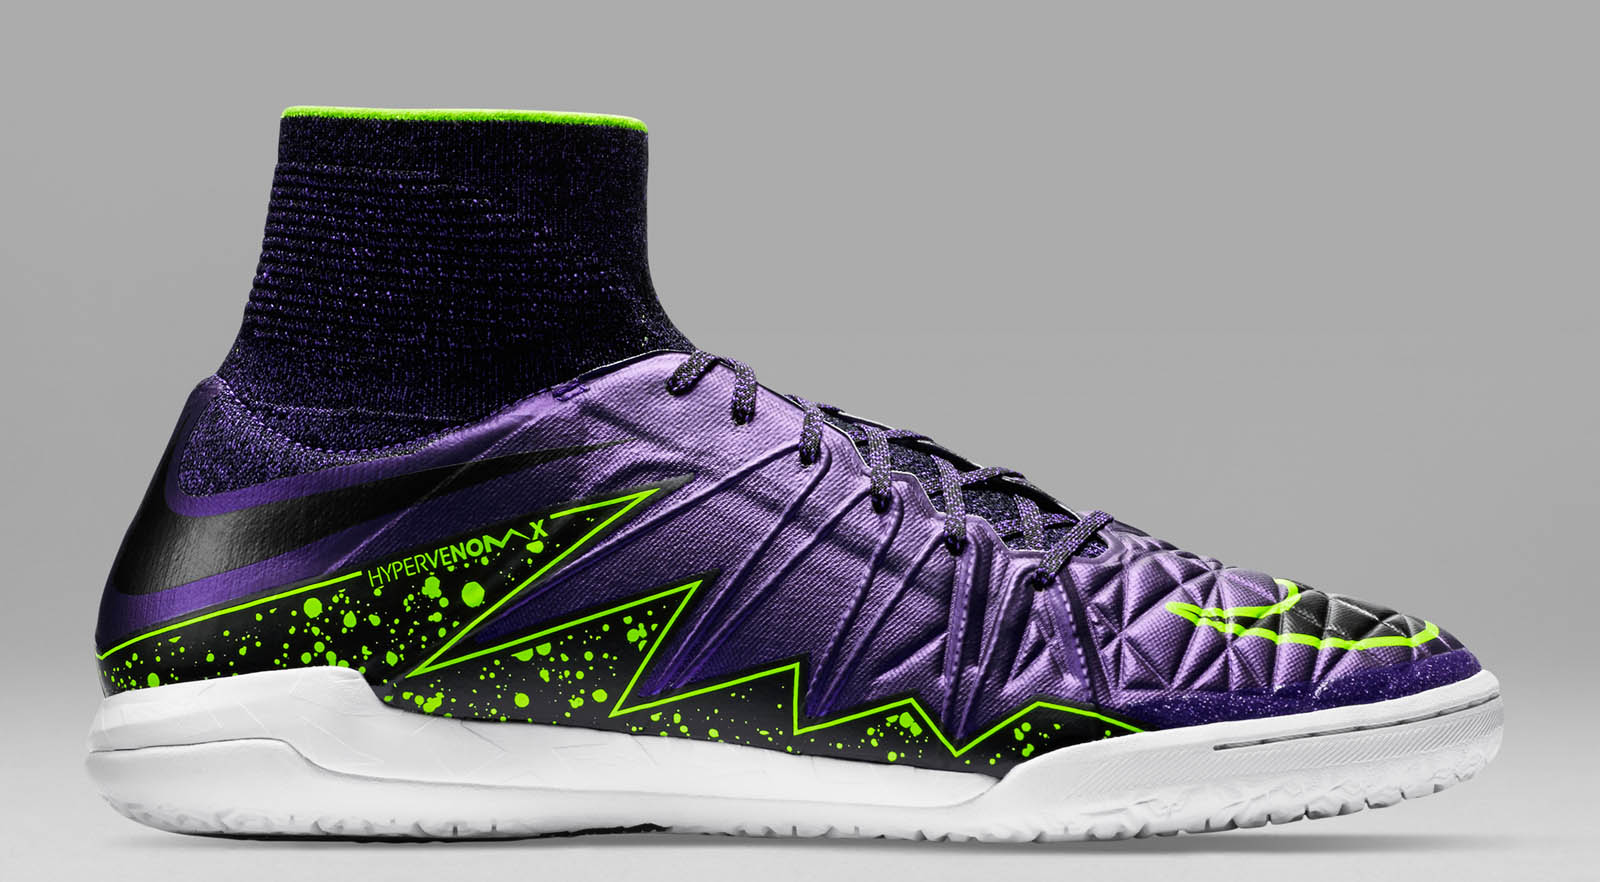 Nike HypervenomX Proximo - Hyper Grape / Volt / Black